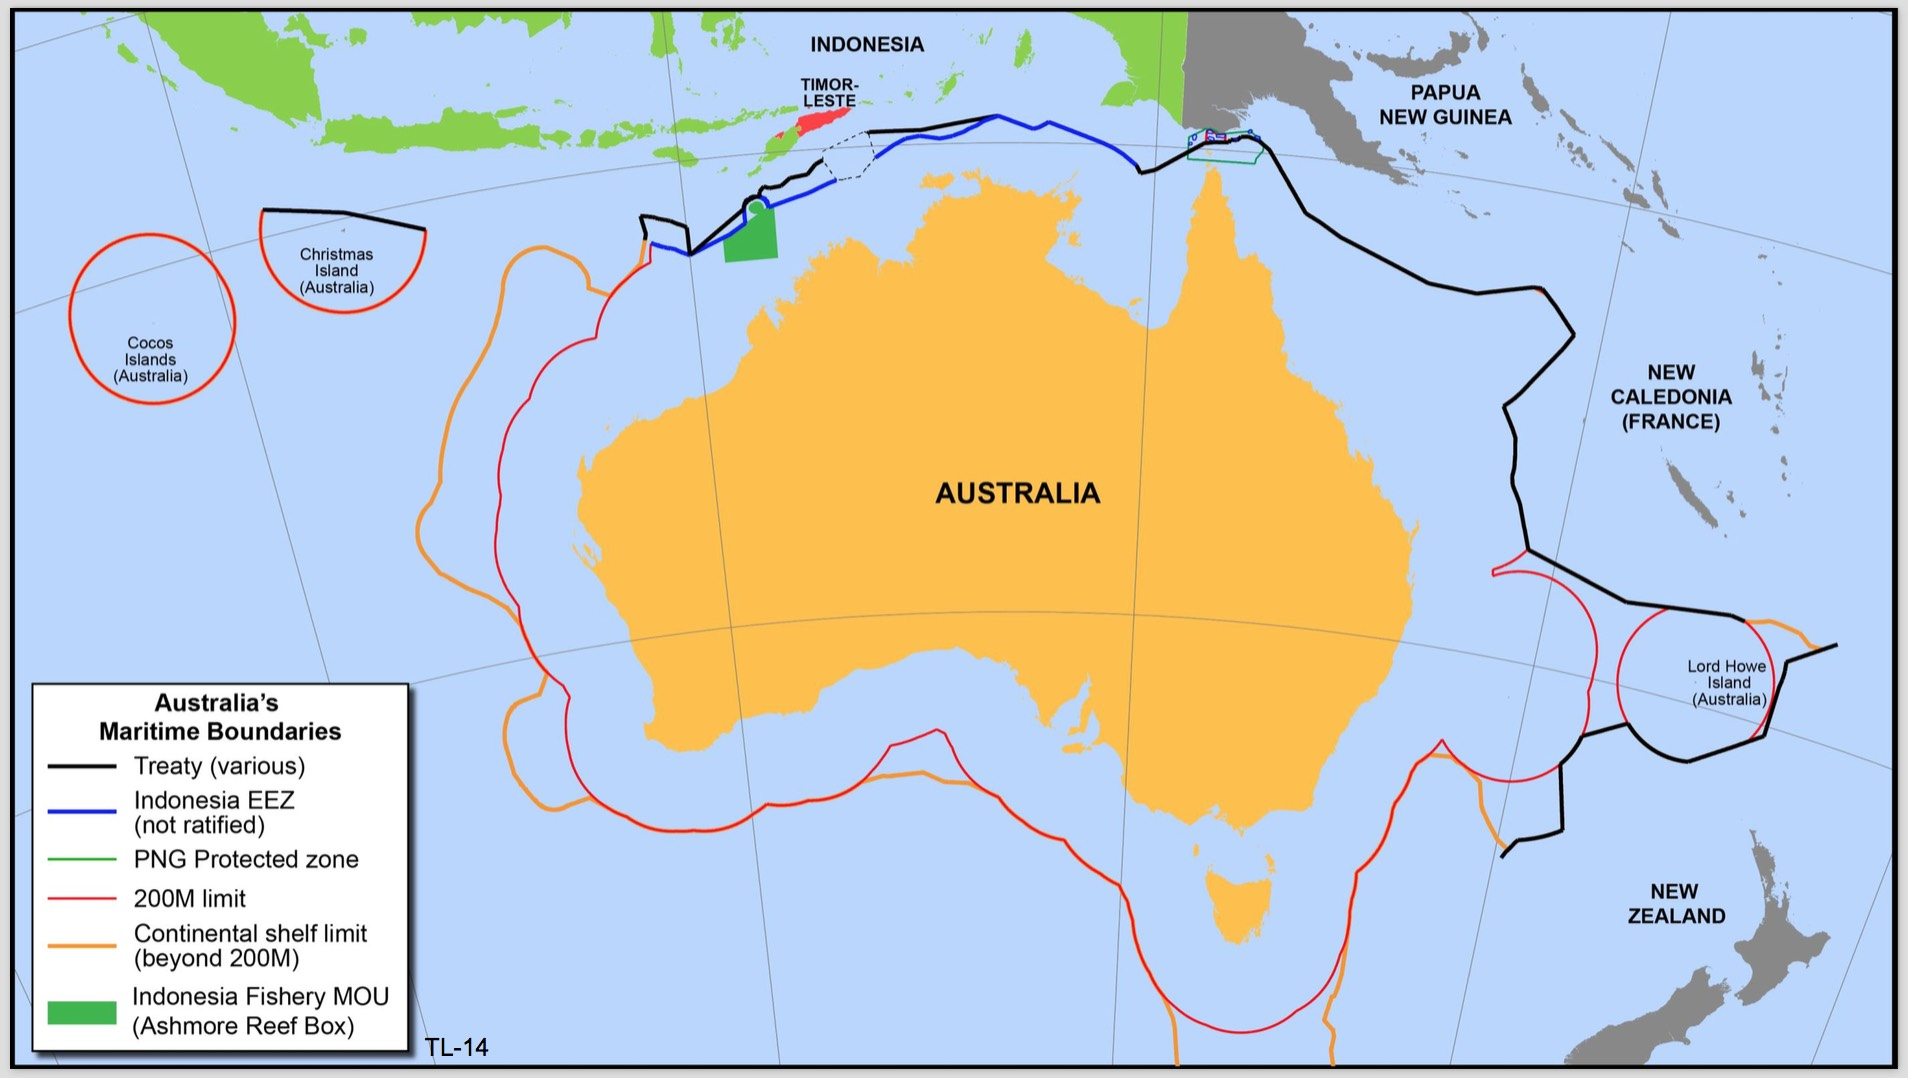 Australia's Maritime Borders - not complete because of the remaining 1.8% between us and East Timor. Map presented by Timor-Leste at Conciliation Commission Hearing 29/8/16